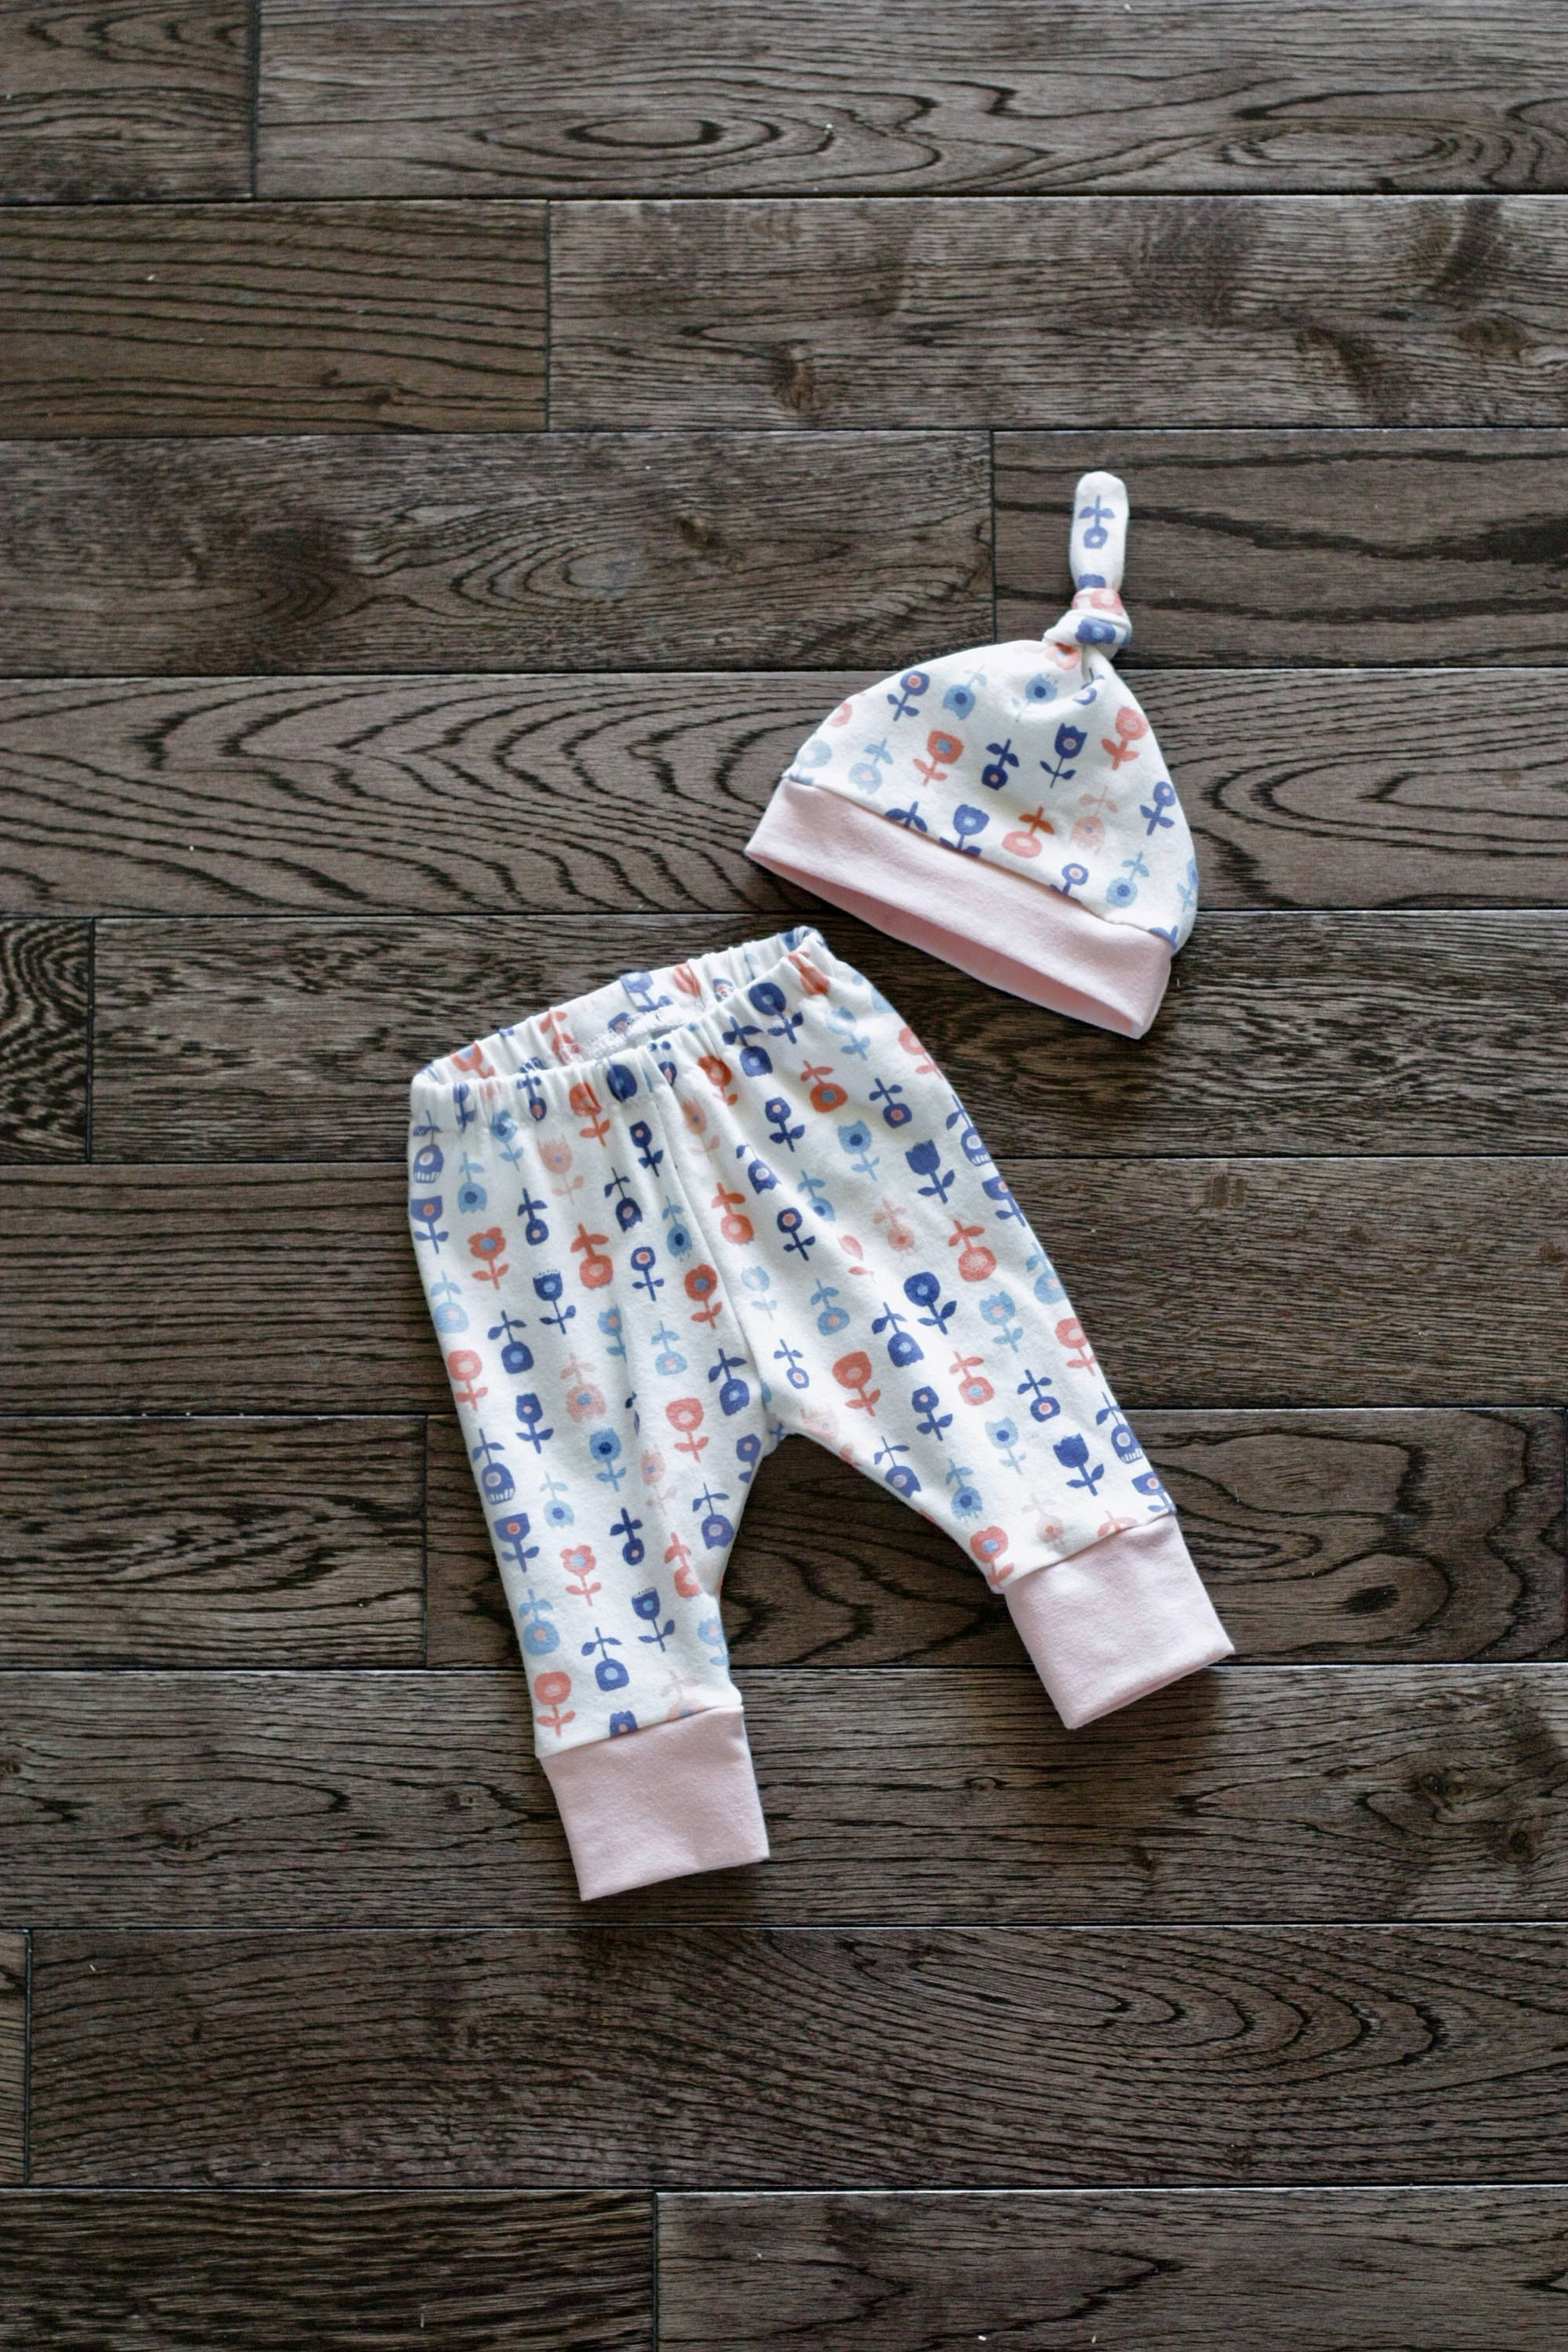 Baby Leggings Toddler Leggings And Hat Set Petite Floral Print With White Cuffs Cotton Jersey Knit Baby Leggings And Hat Set Toddler Leggings Baby Leggings Baby Knitting